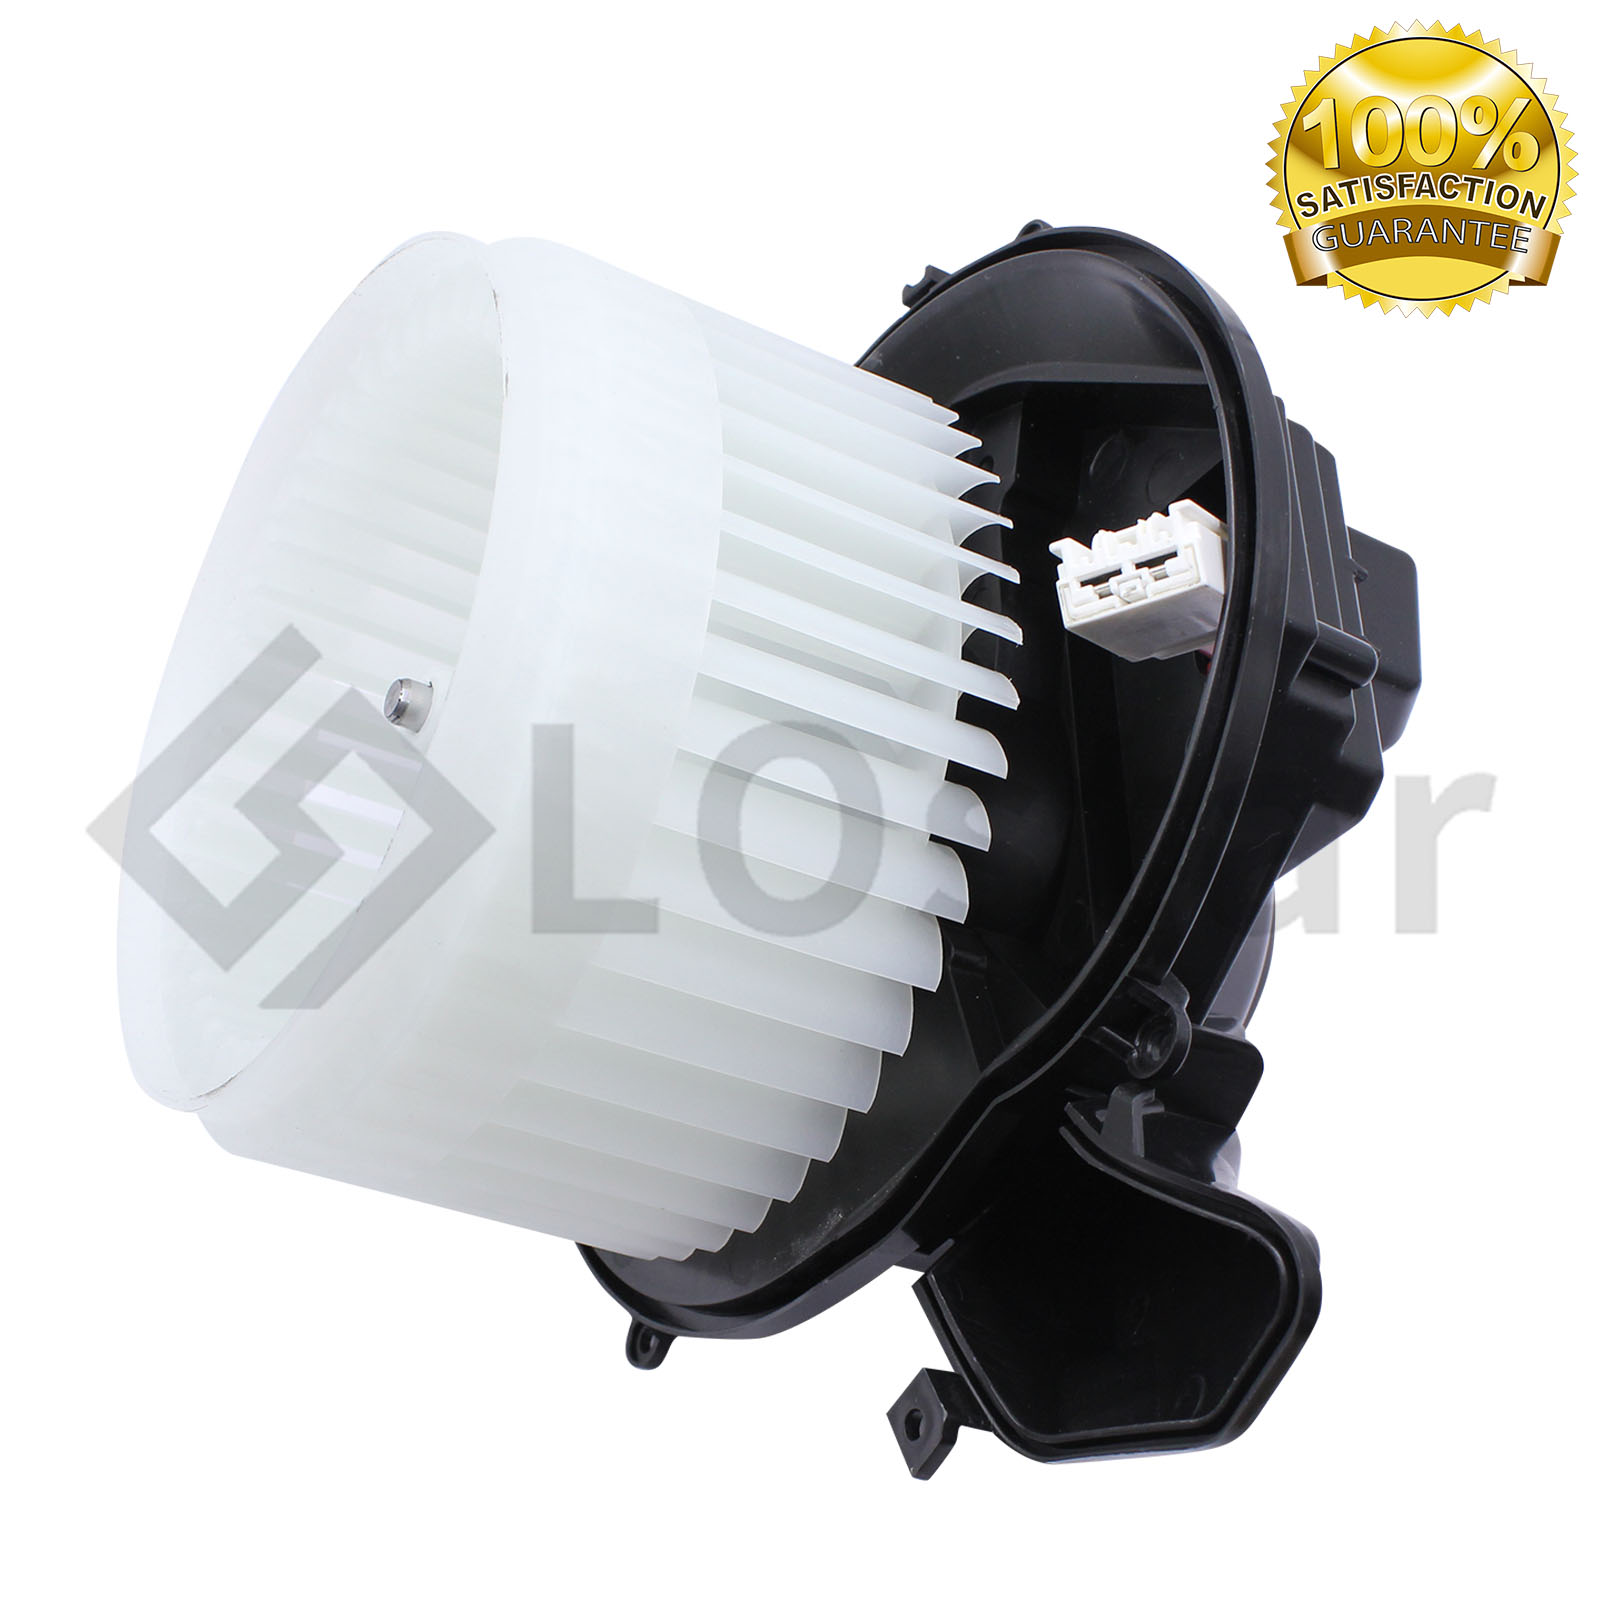 A//C AC Heater Blower Motor w// Fan Cage for Volvo XC70 XC90 S60 S80 V70